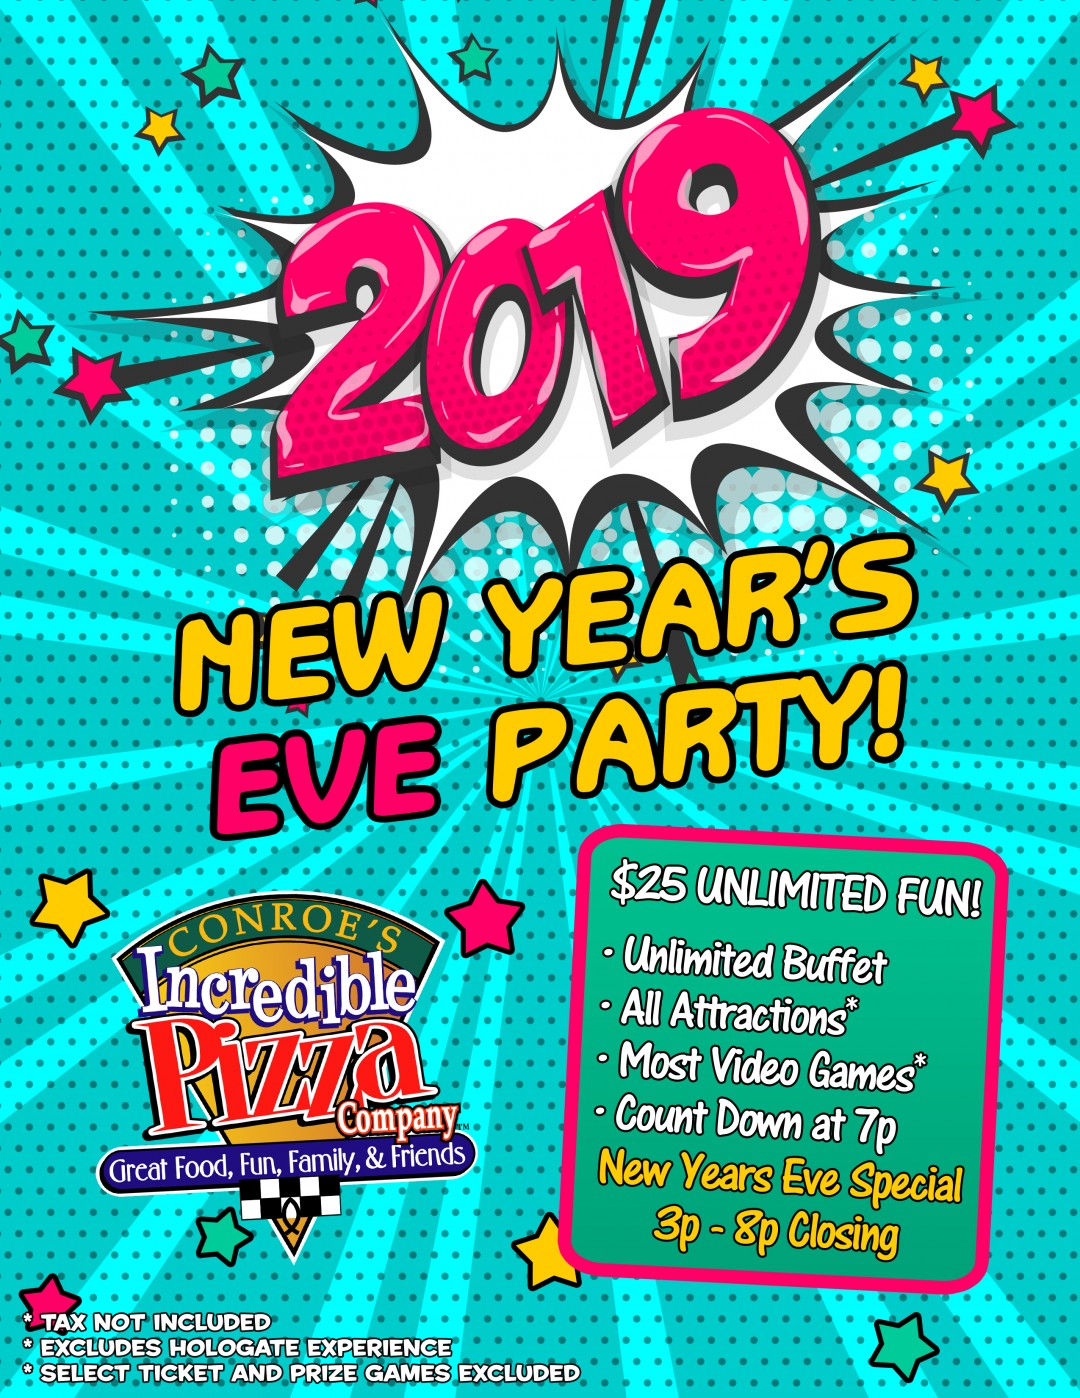 New Year's Eve Party! Mon., Dec. 31